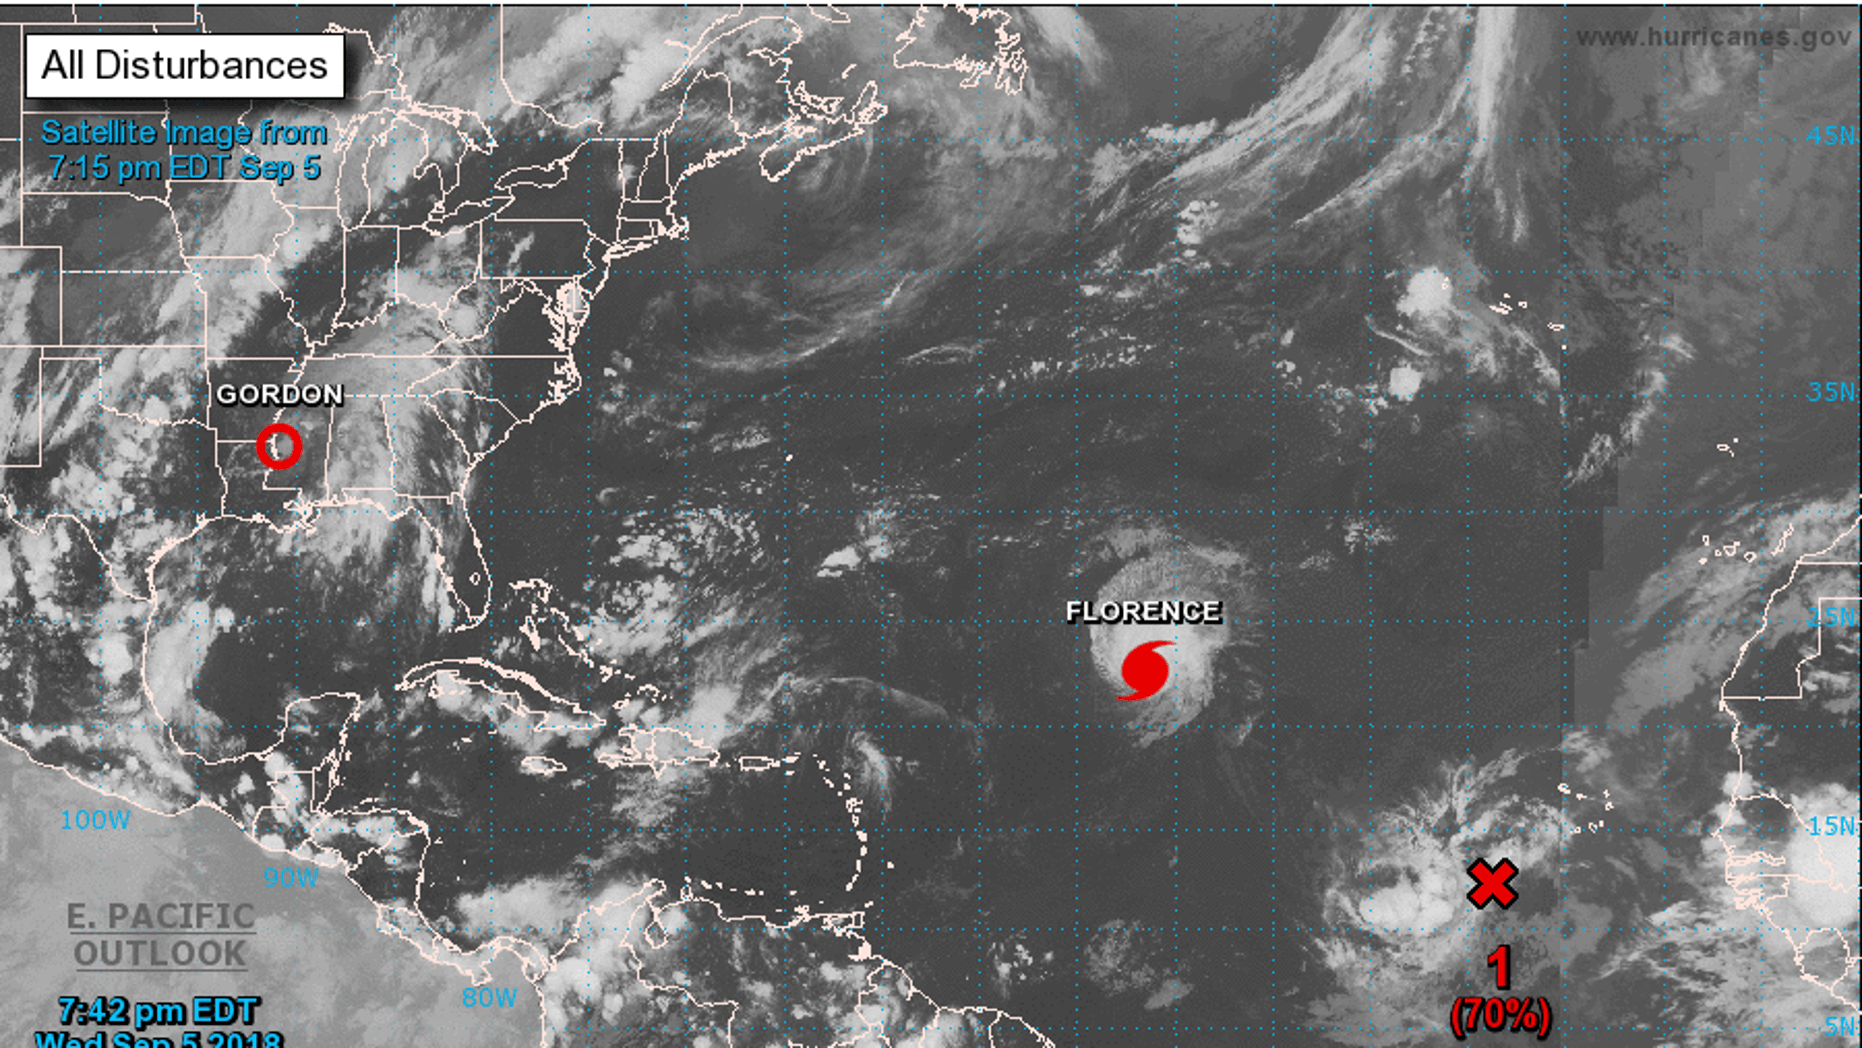 This satellite image shows Hurricane Florence in the North Atlantic Ocean Wednesday night.